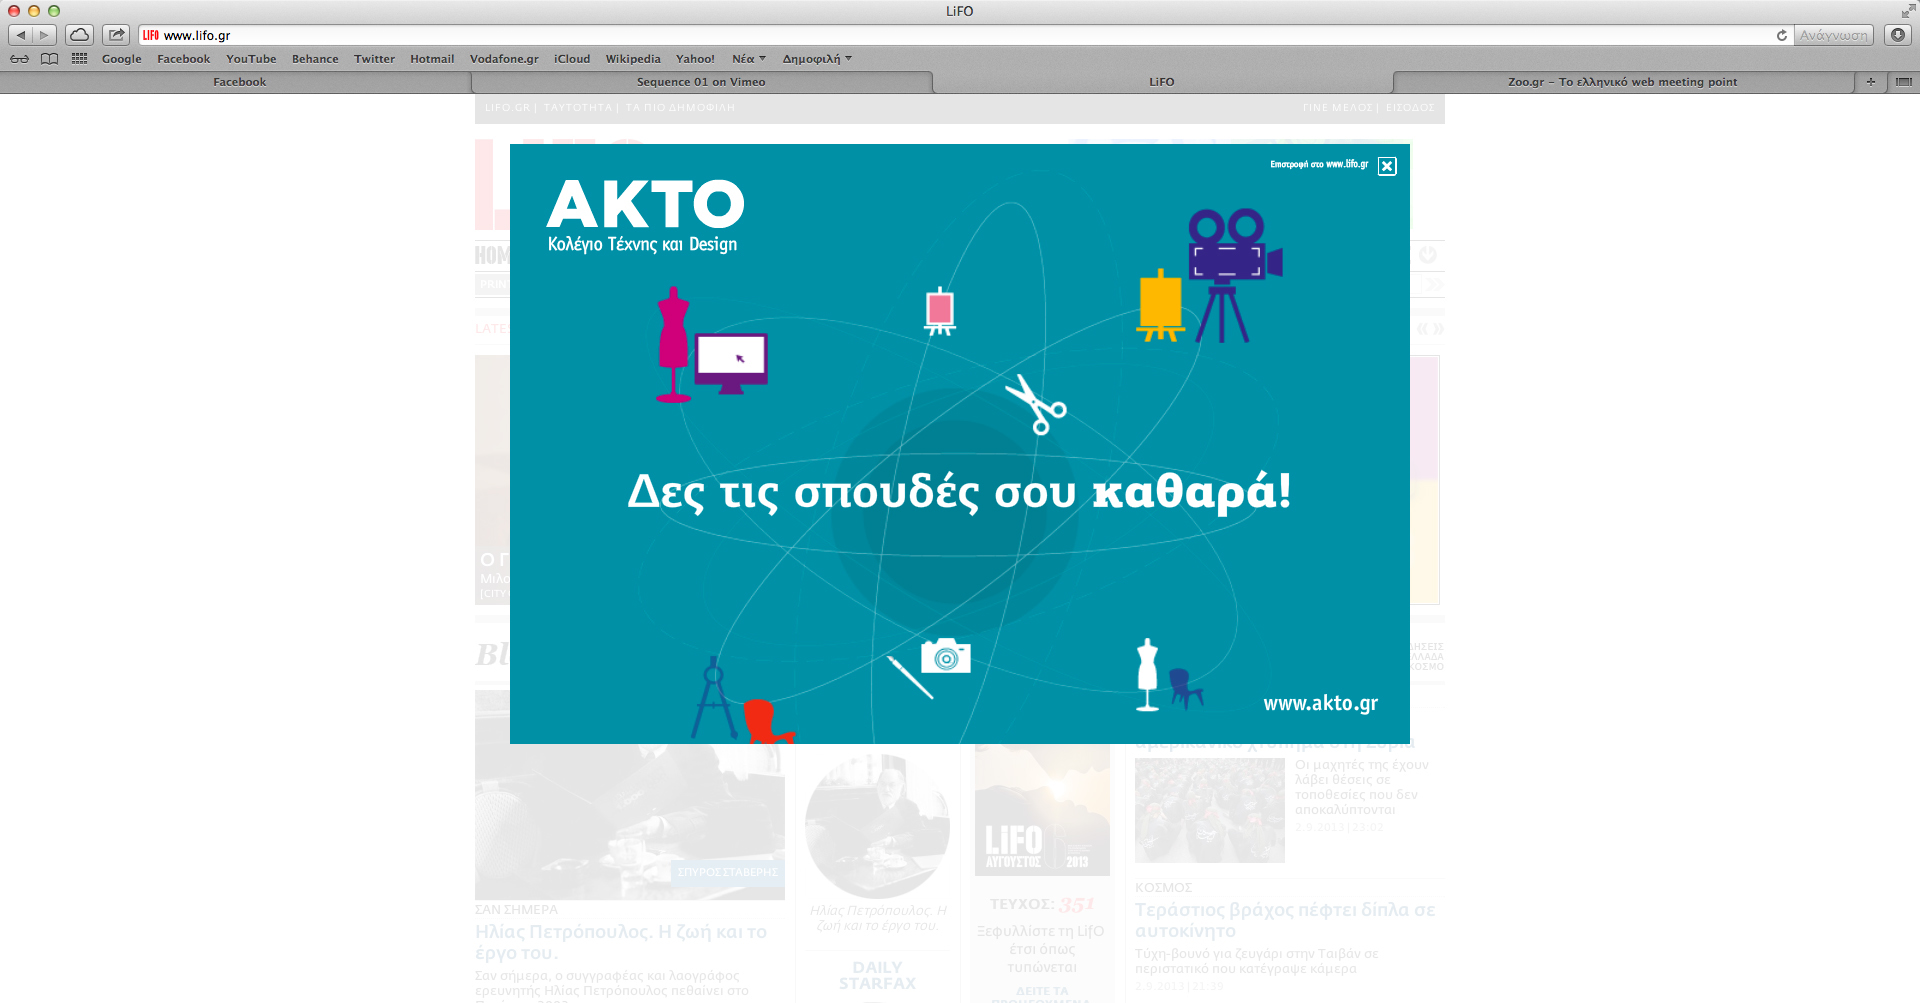 AKTO Campaign 2013 - 2014 on Behance